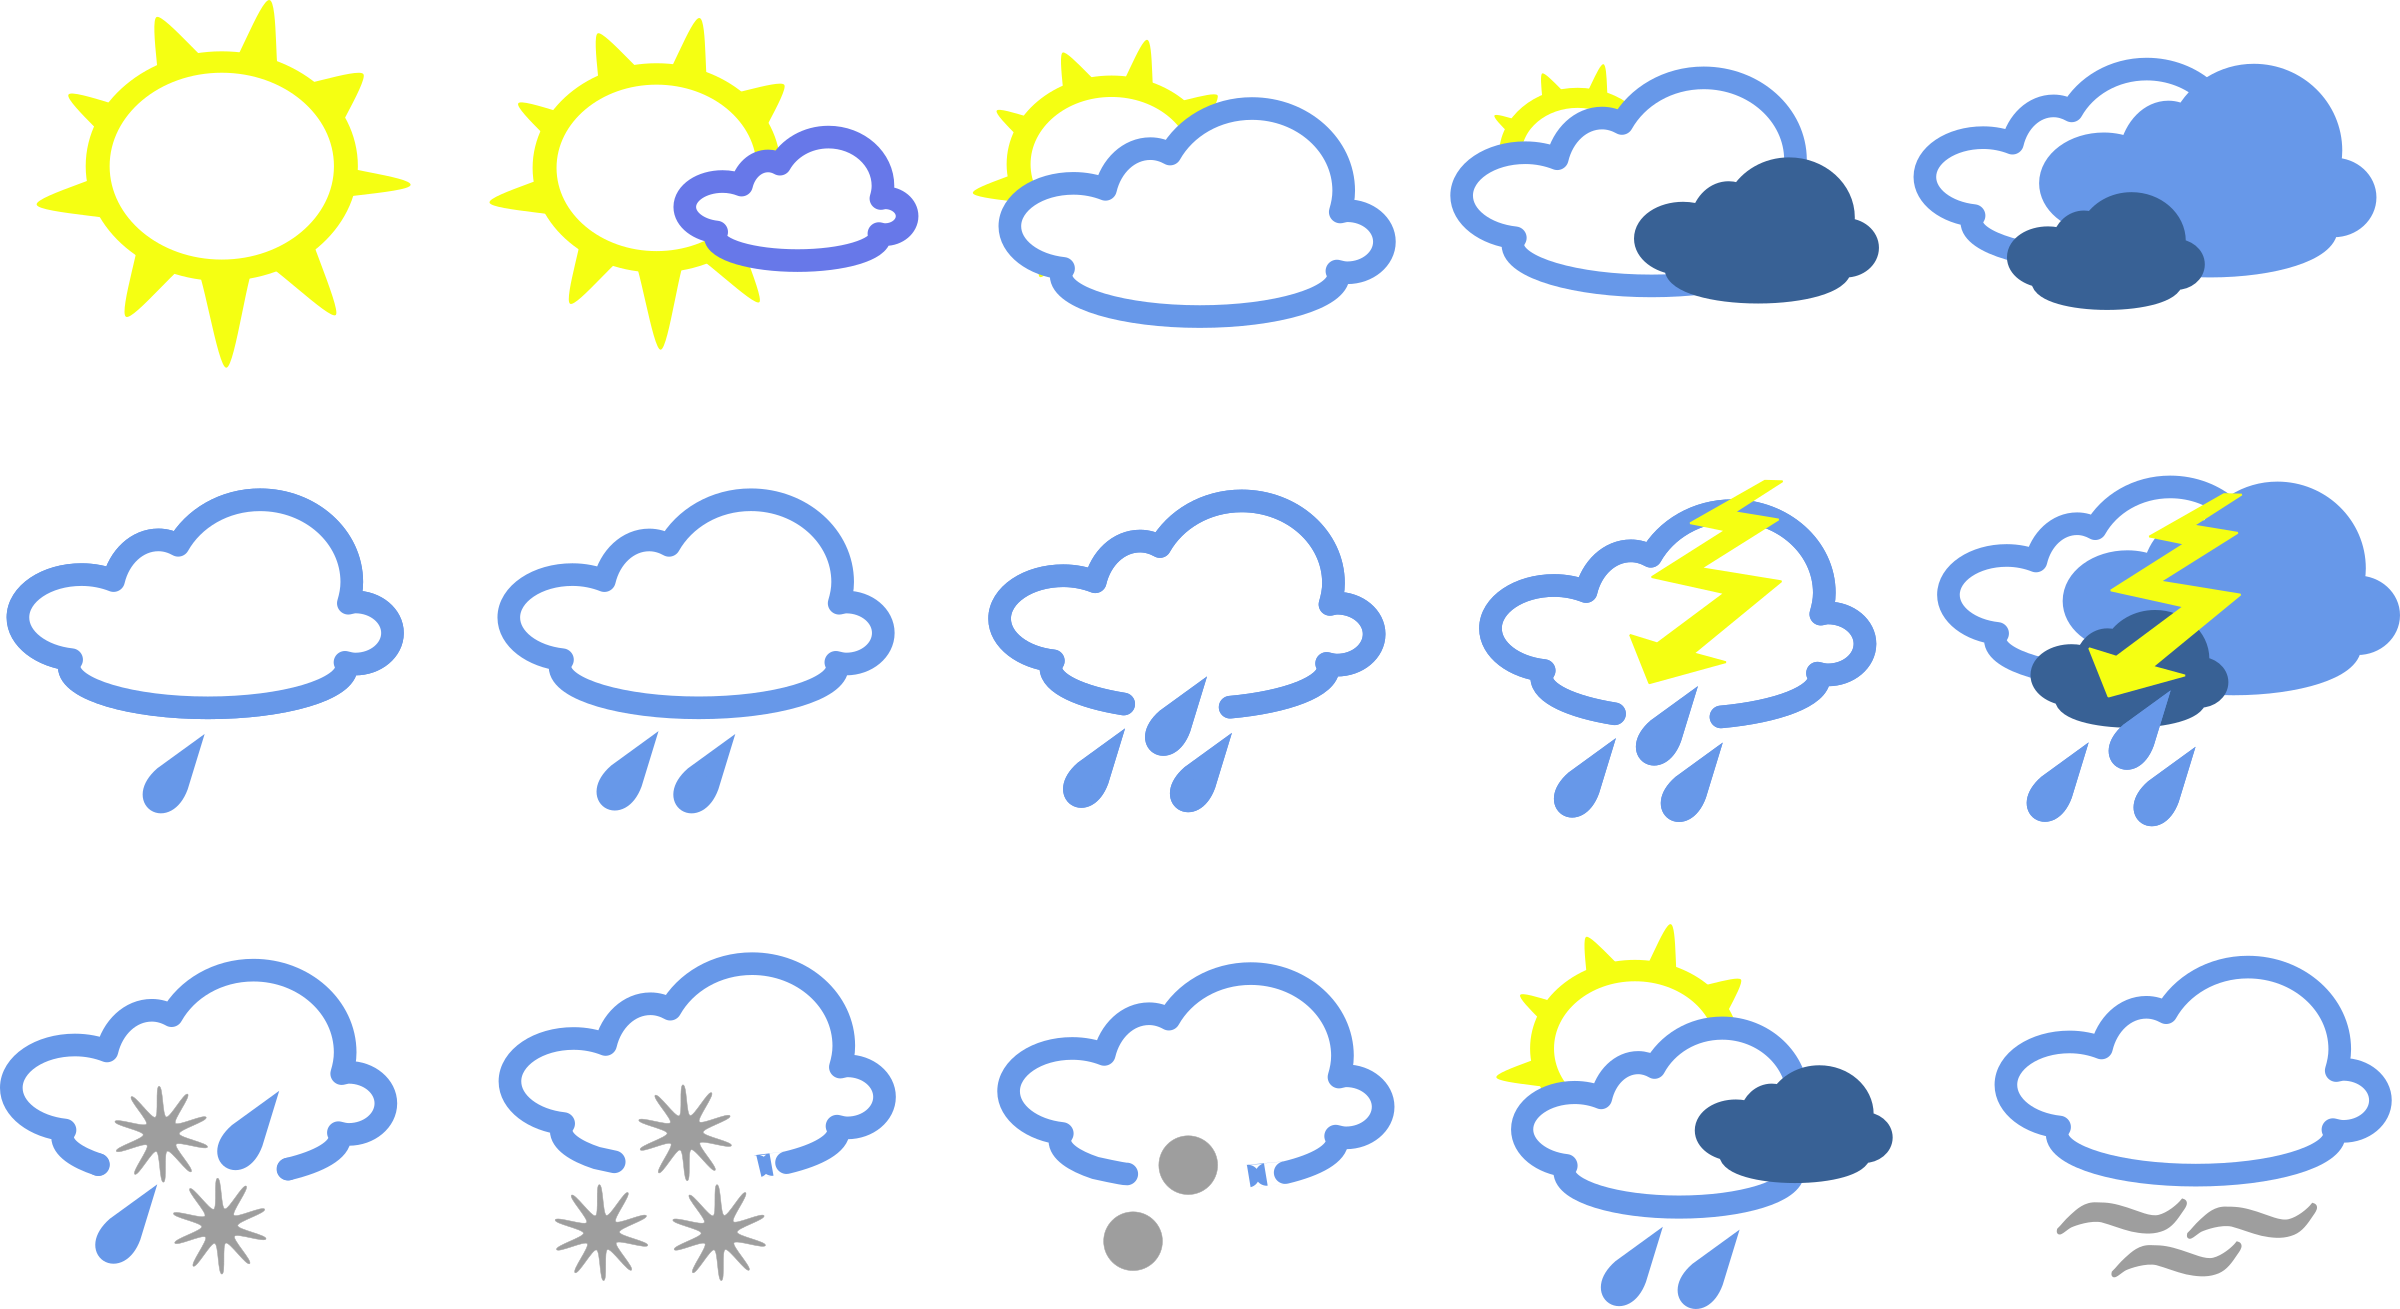 Cloudy clipart wather, Cloudy wather Transparent FREE for.